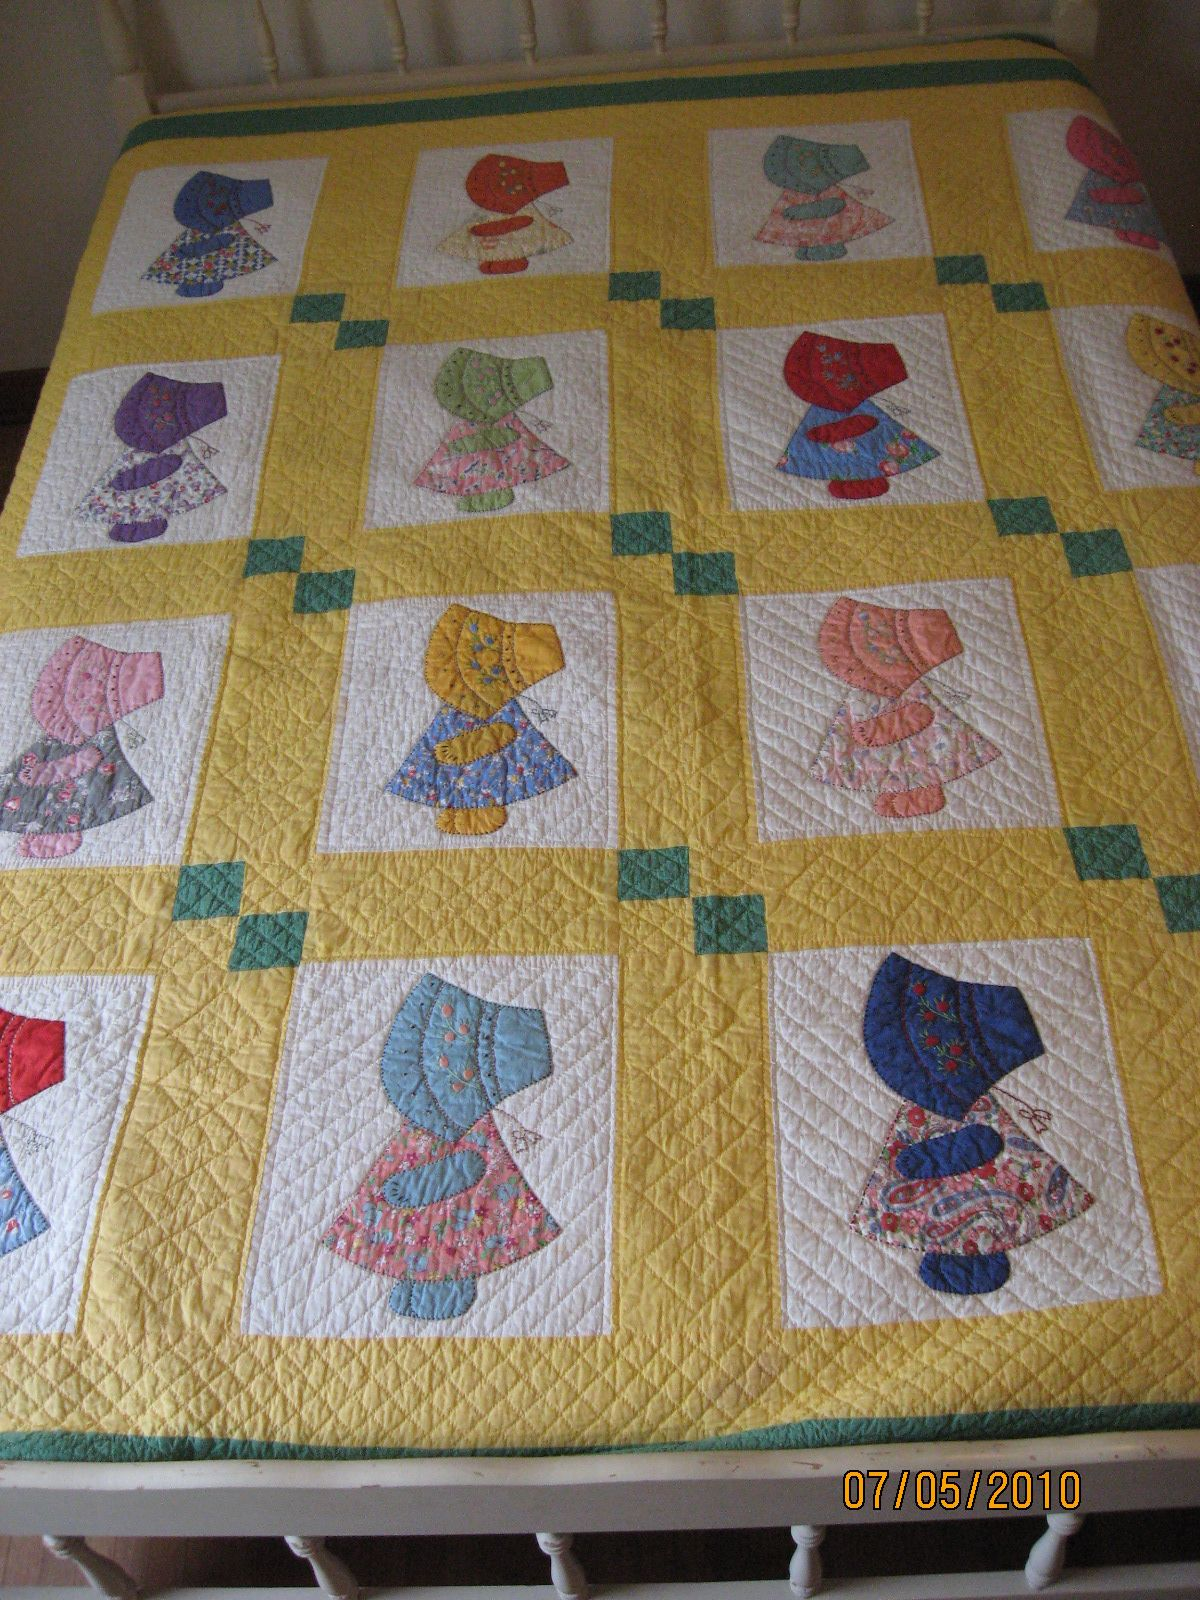 Sun Bonnet Sue made by my Grandma in 1956.  I'm amazed how often people repin this quilt.  Grammie would have been so thrilled to know how much her work was appreciated. #sunbonnetsue